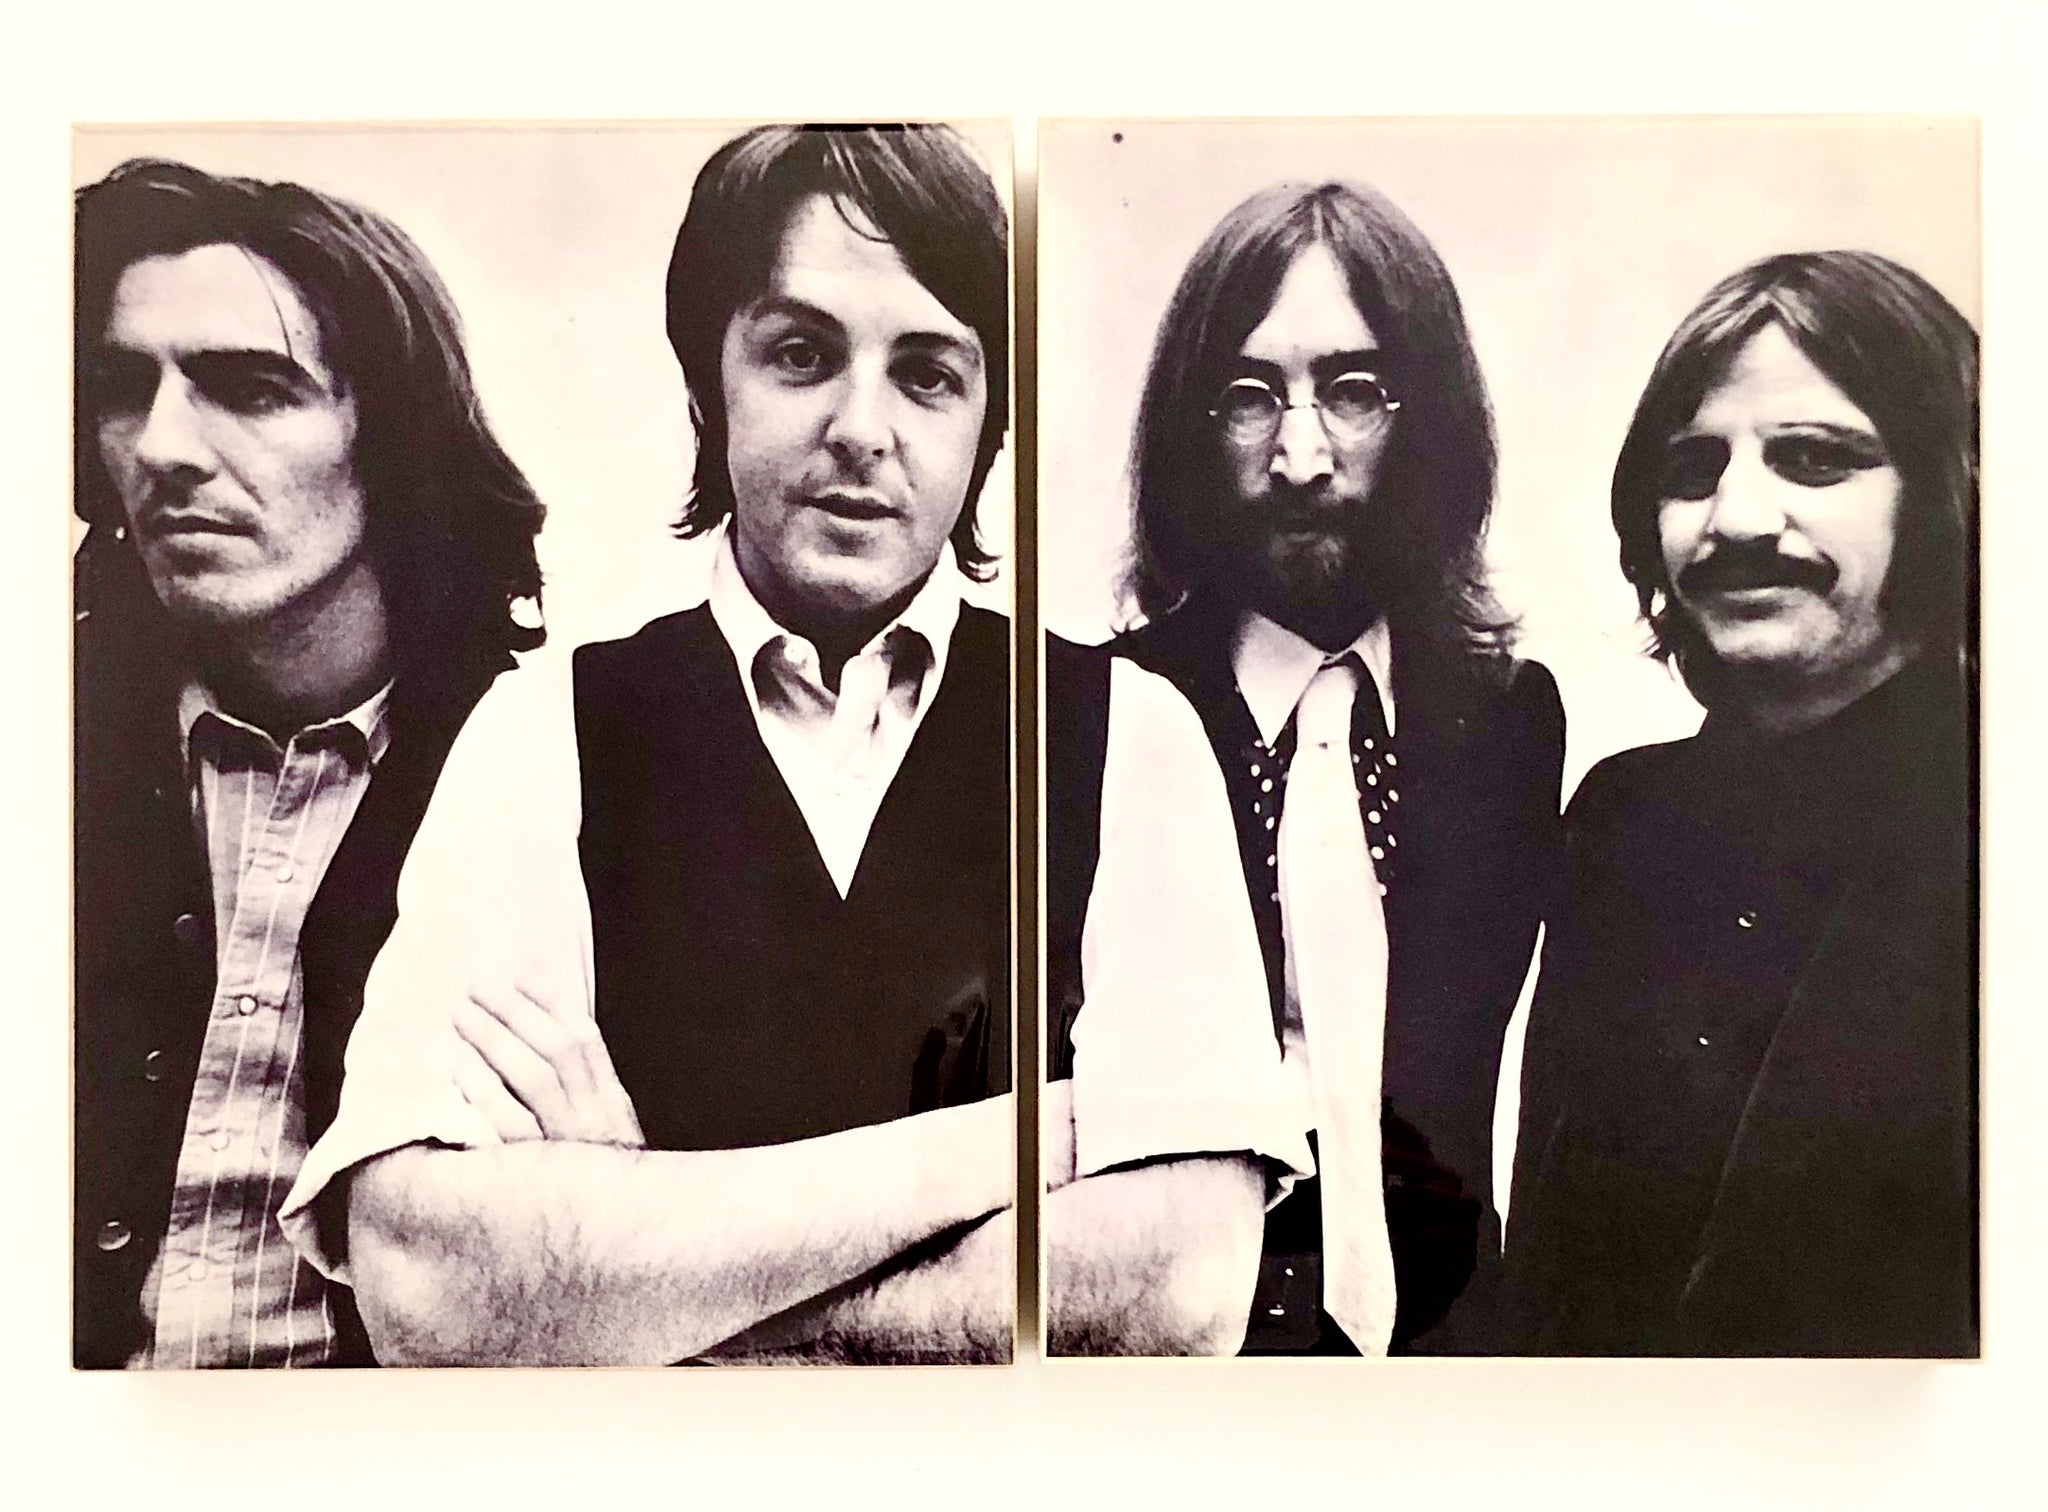 BEATLES - Let It Be era